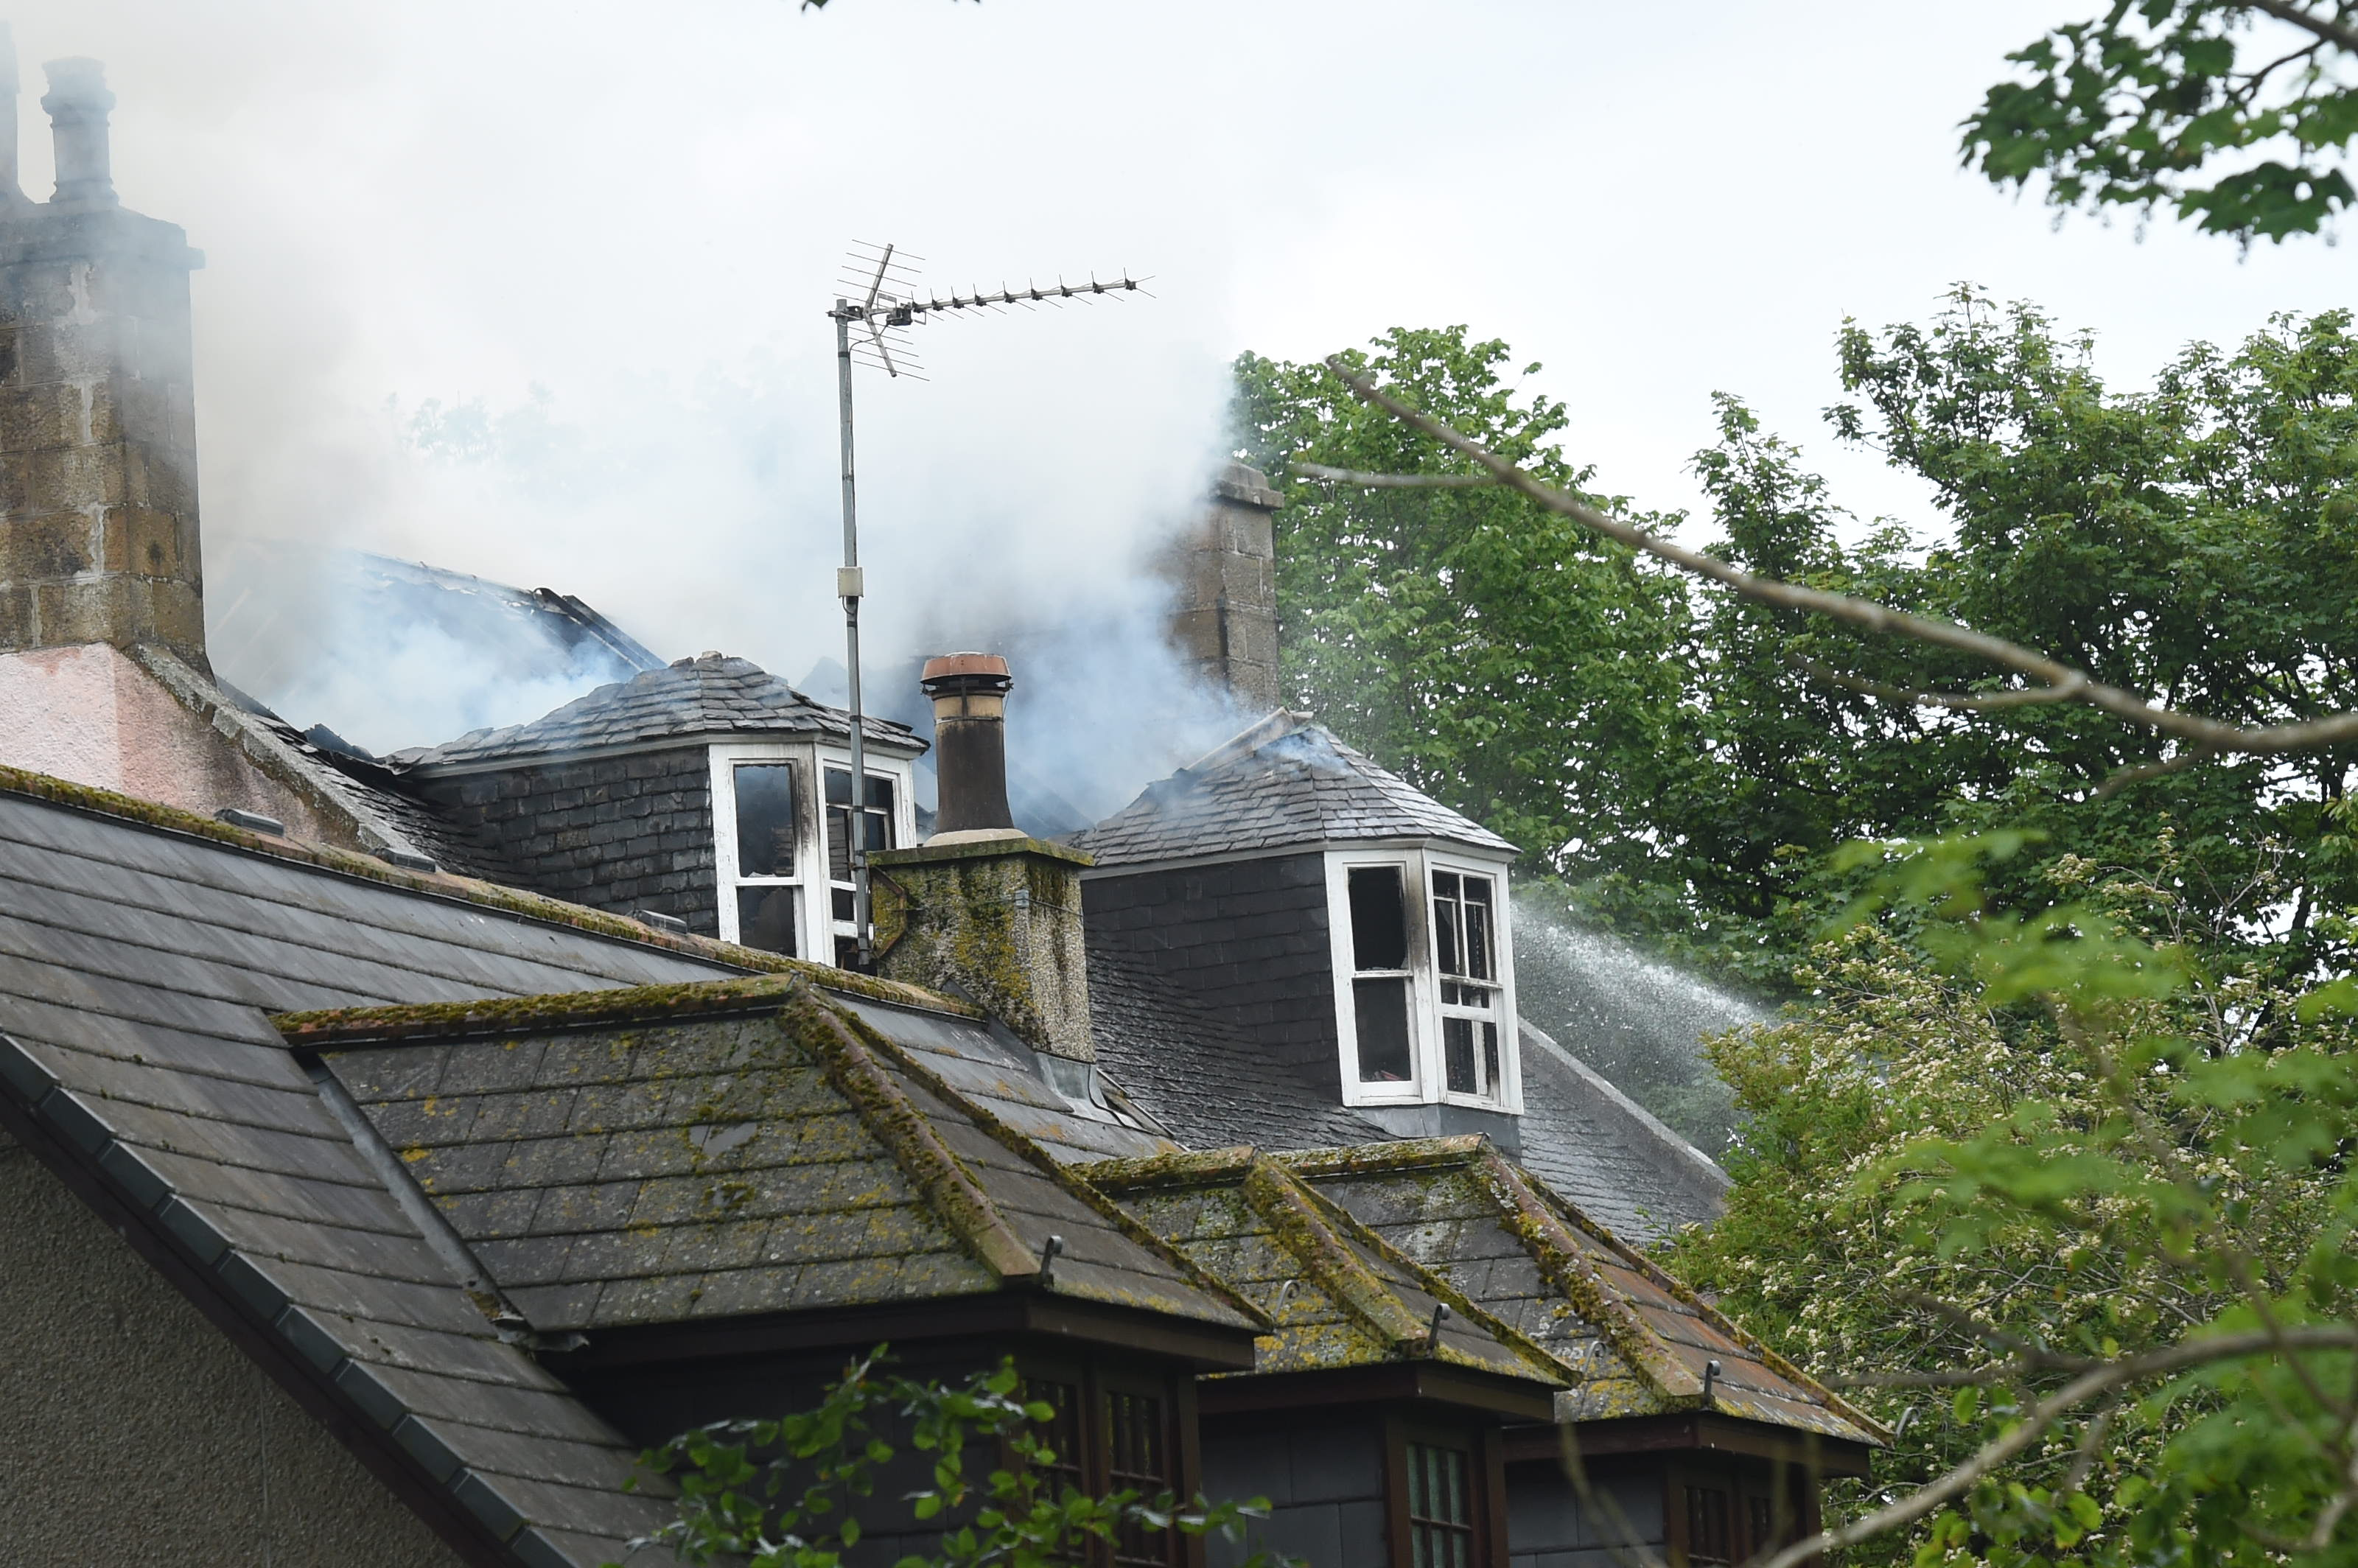 The fire broke out in a property on Inn Brae